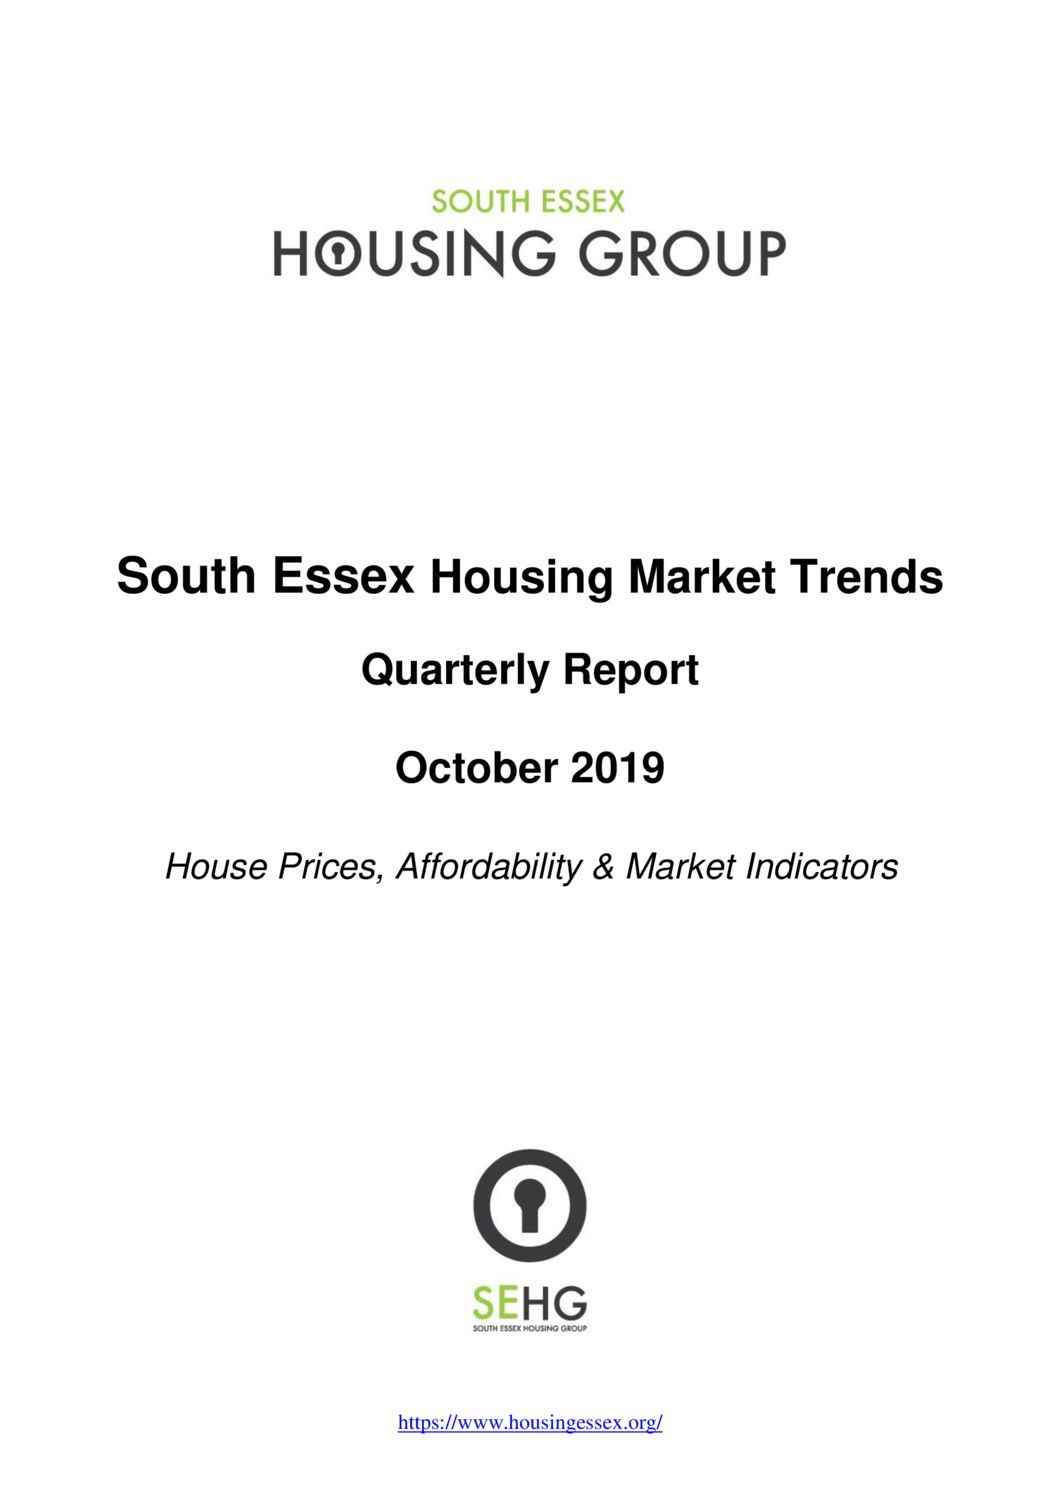 South Essex Housing Market Trends Report  October 2019